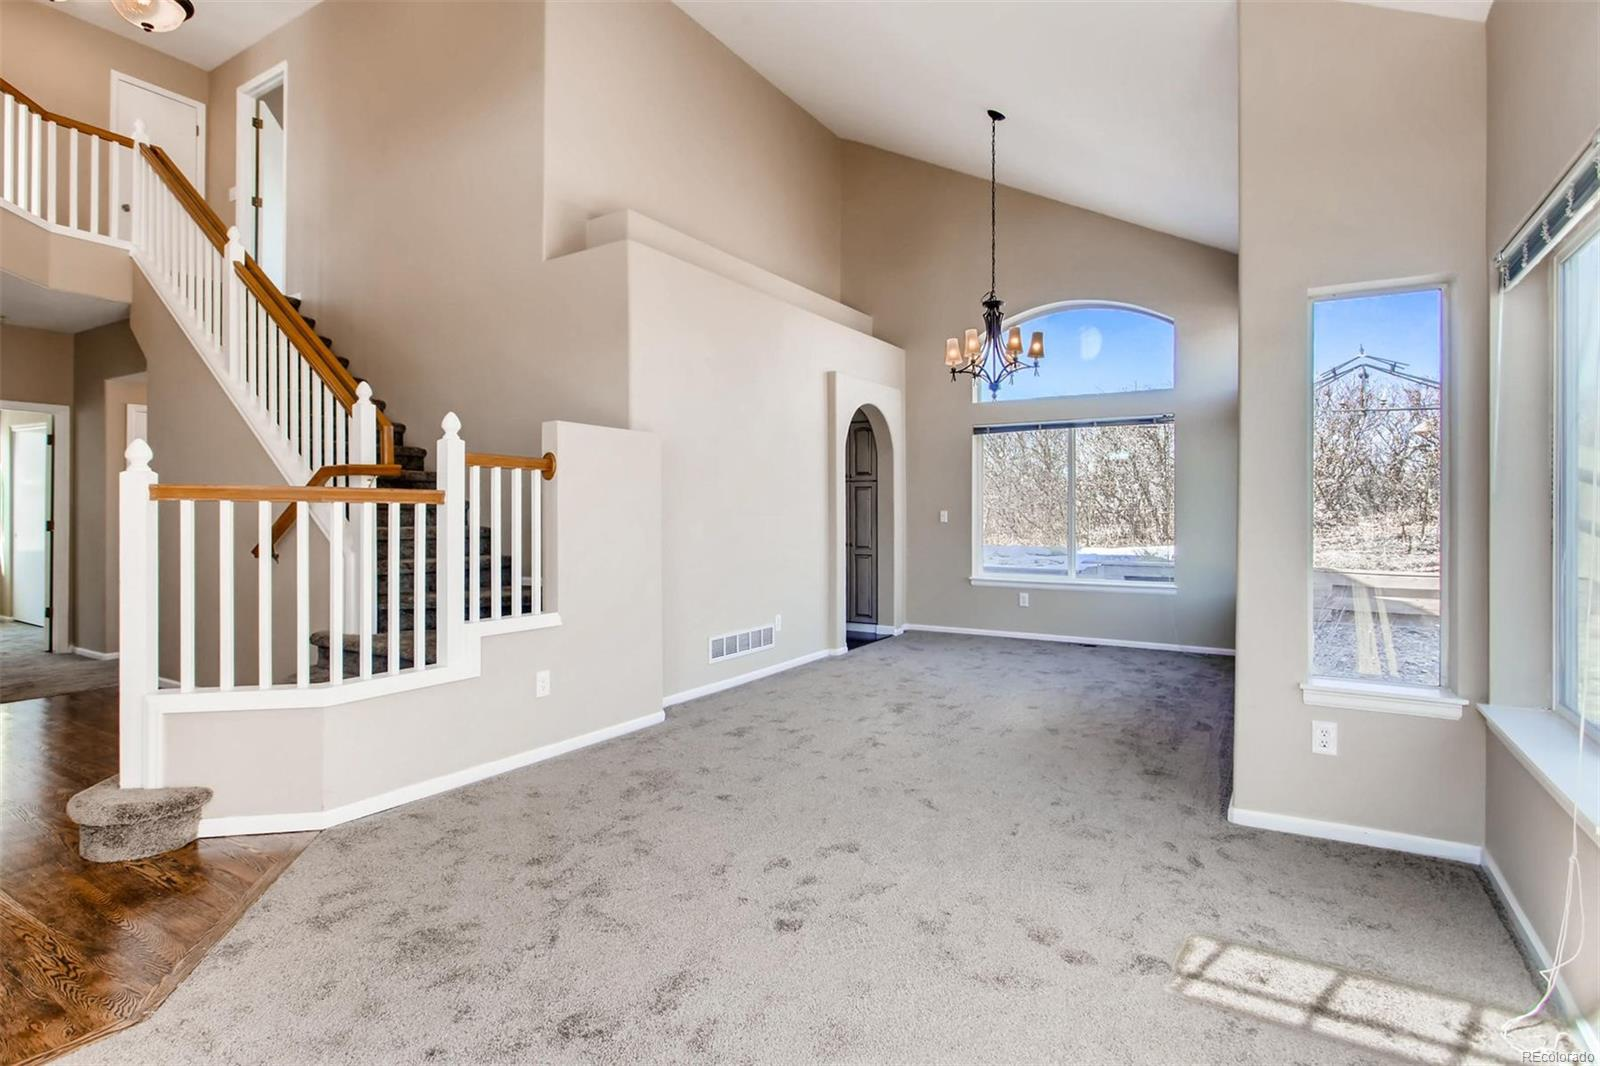 Entry Staircase and Dining Room from Living Room